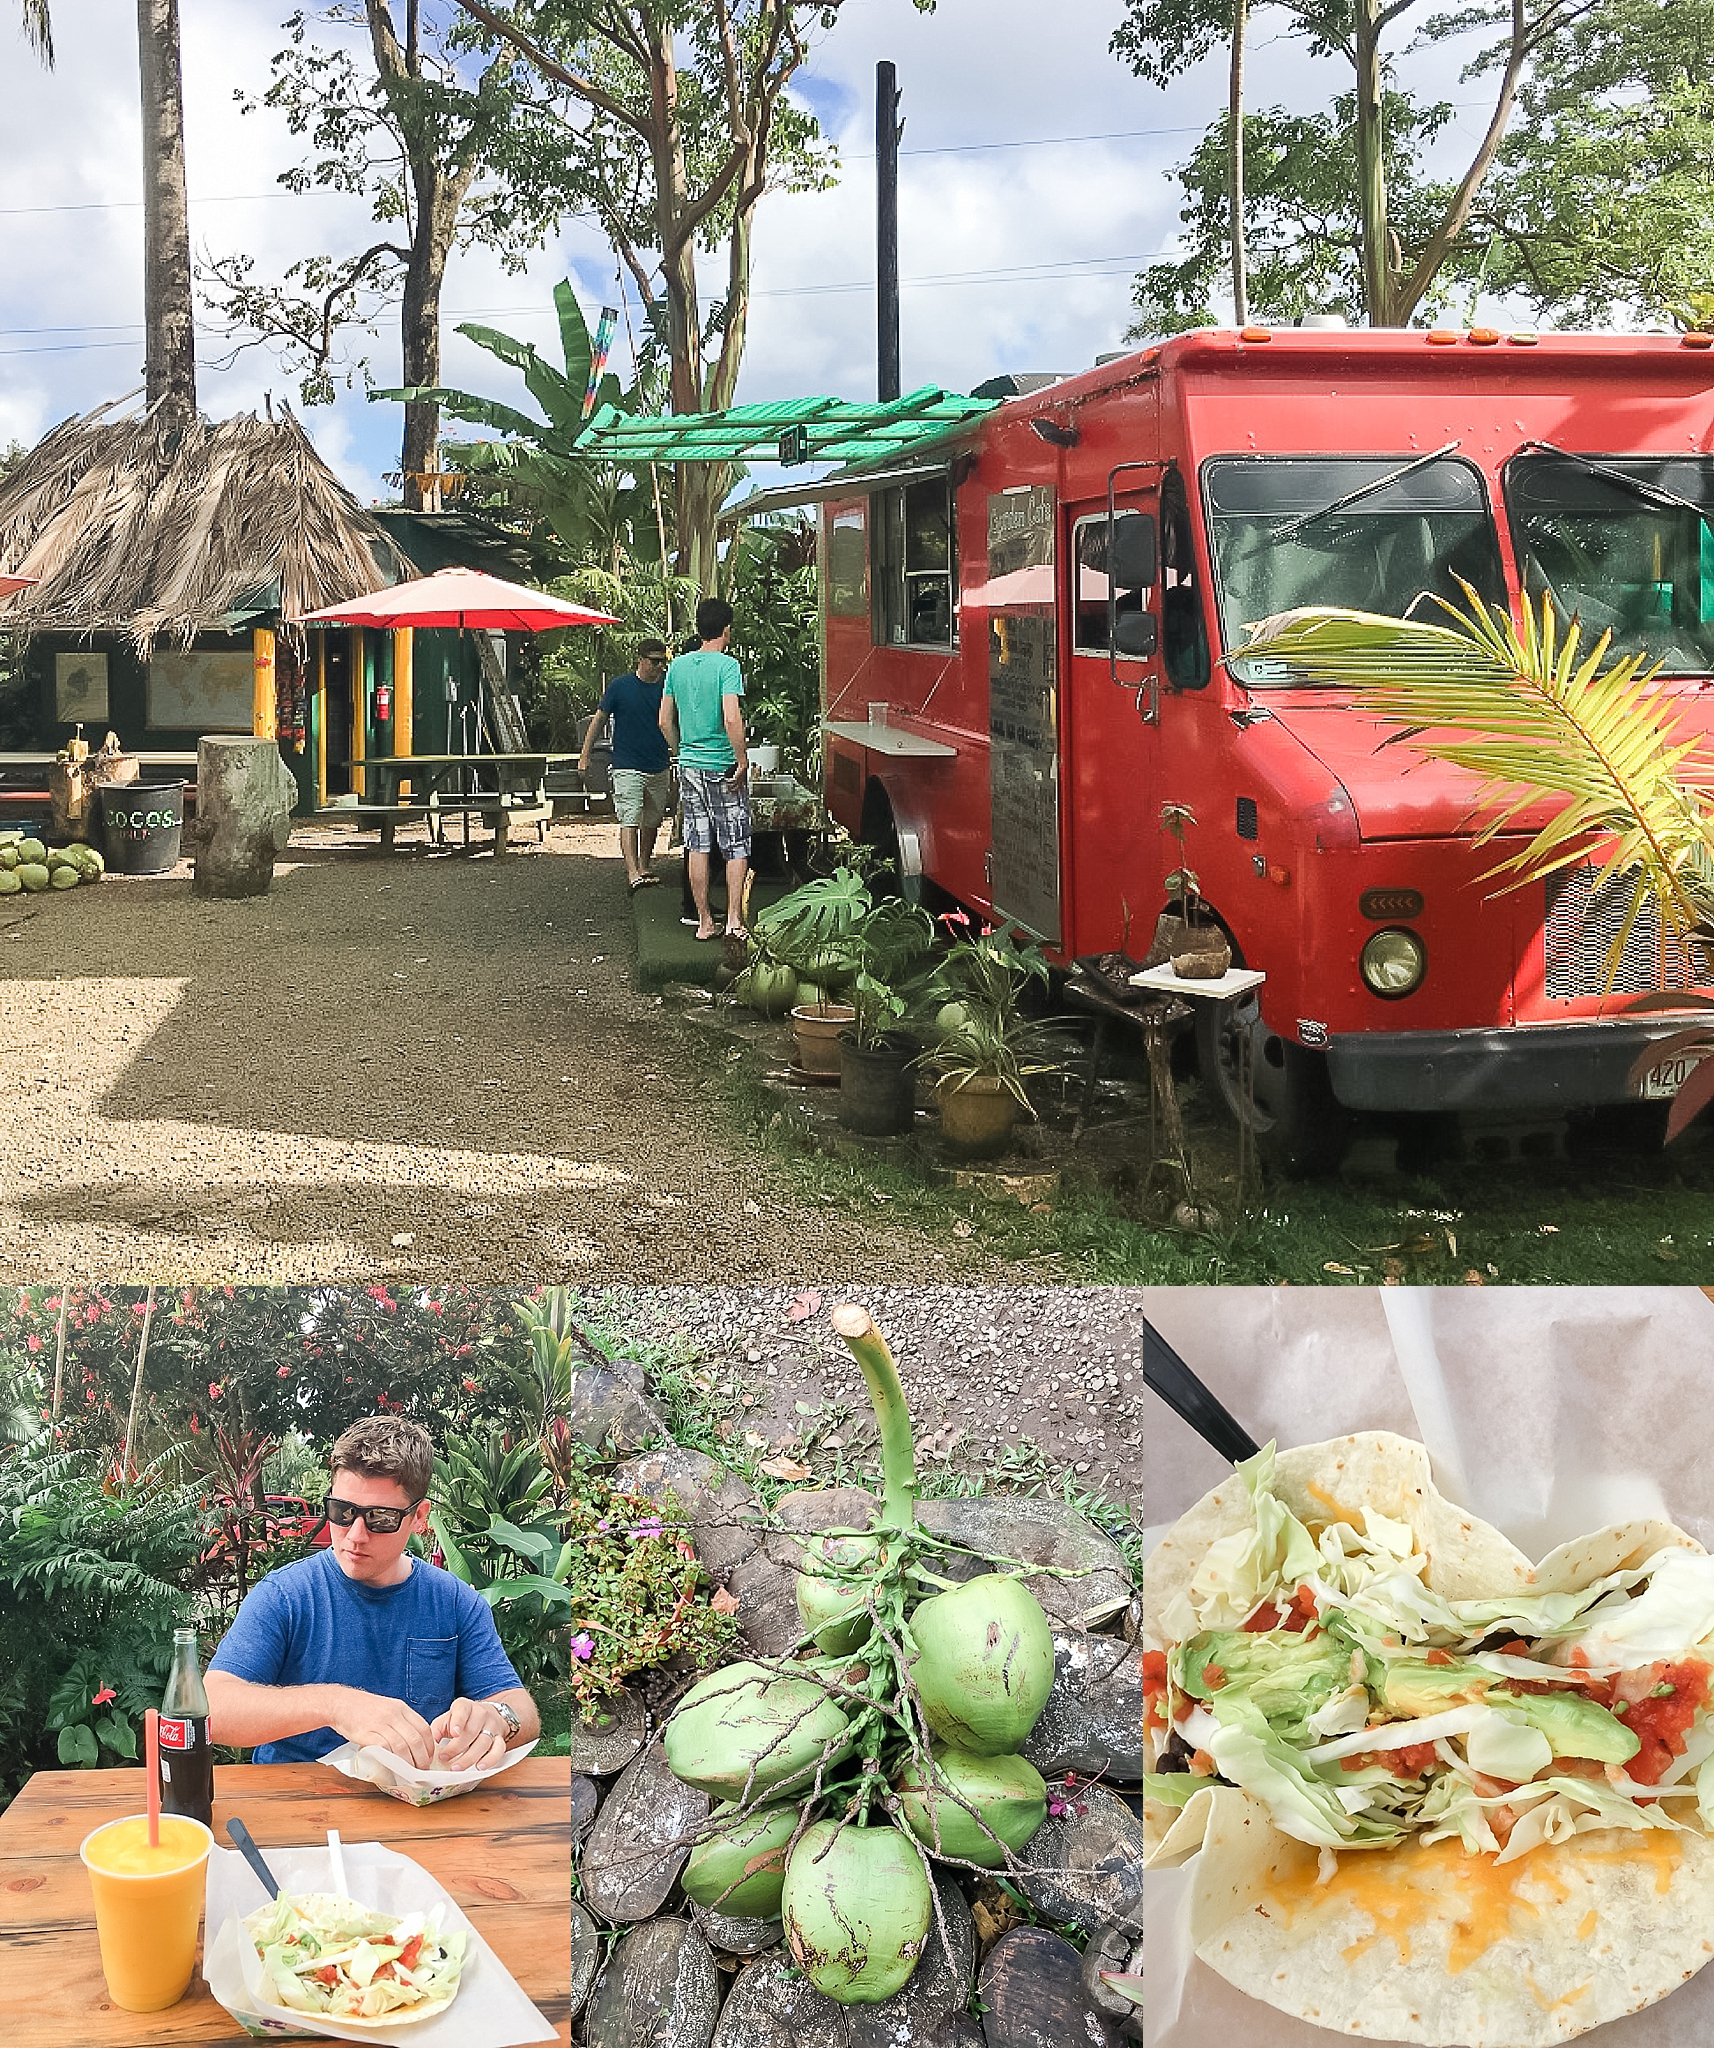 Early lunch at food truck located near entrance of the Garden of Eden on one of the stops during road to Hana drive in Maui. Photos by Jade Min Photography.